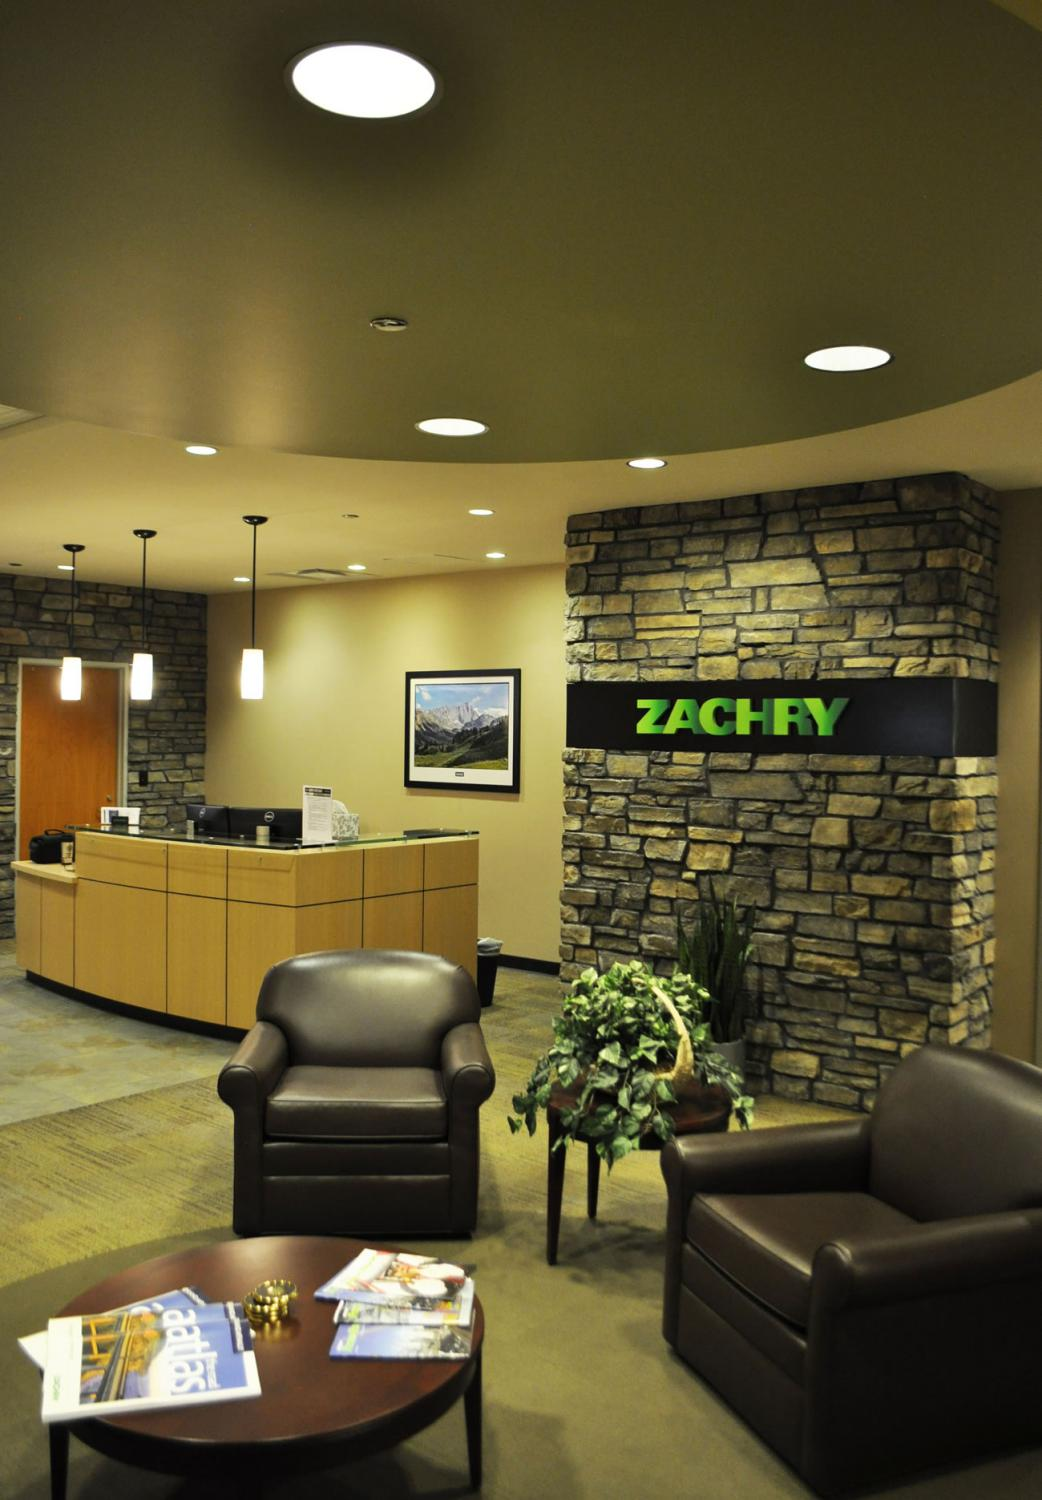 Zachry Engineering Lobby and Seating Area Denver Colorado